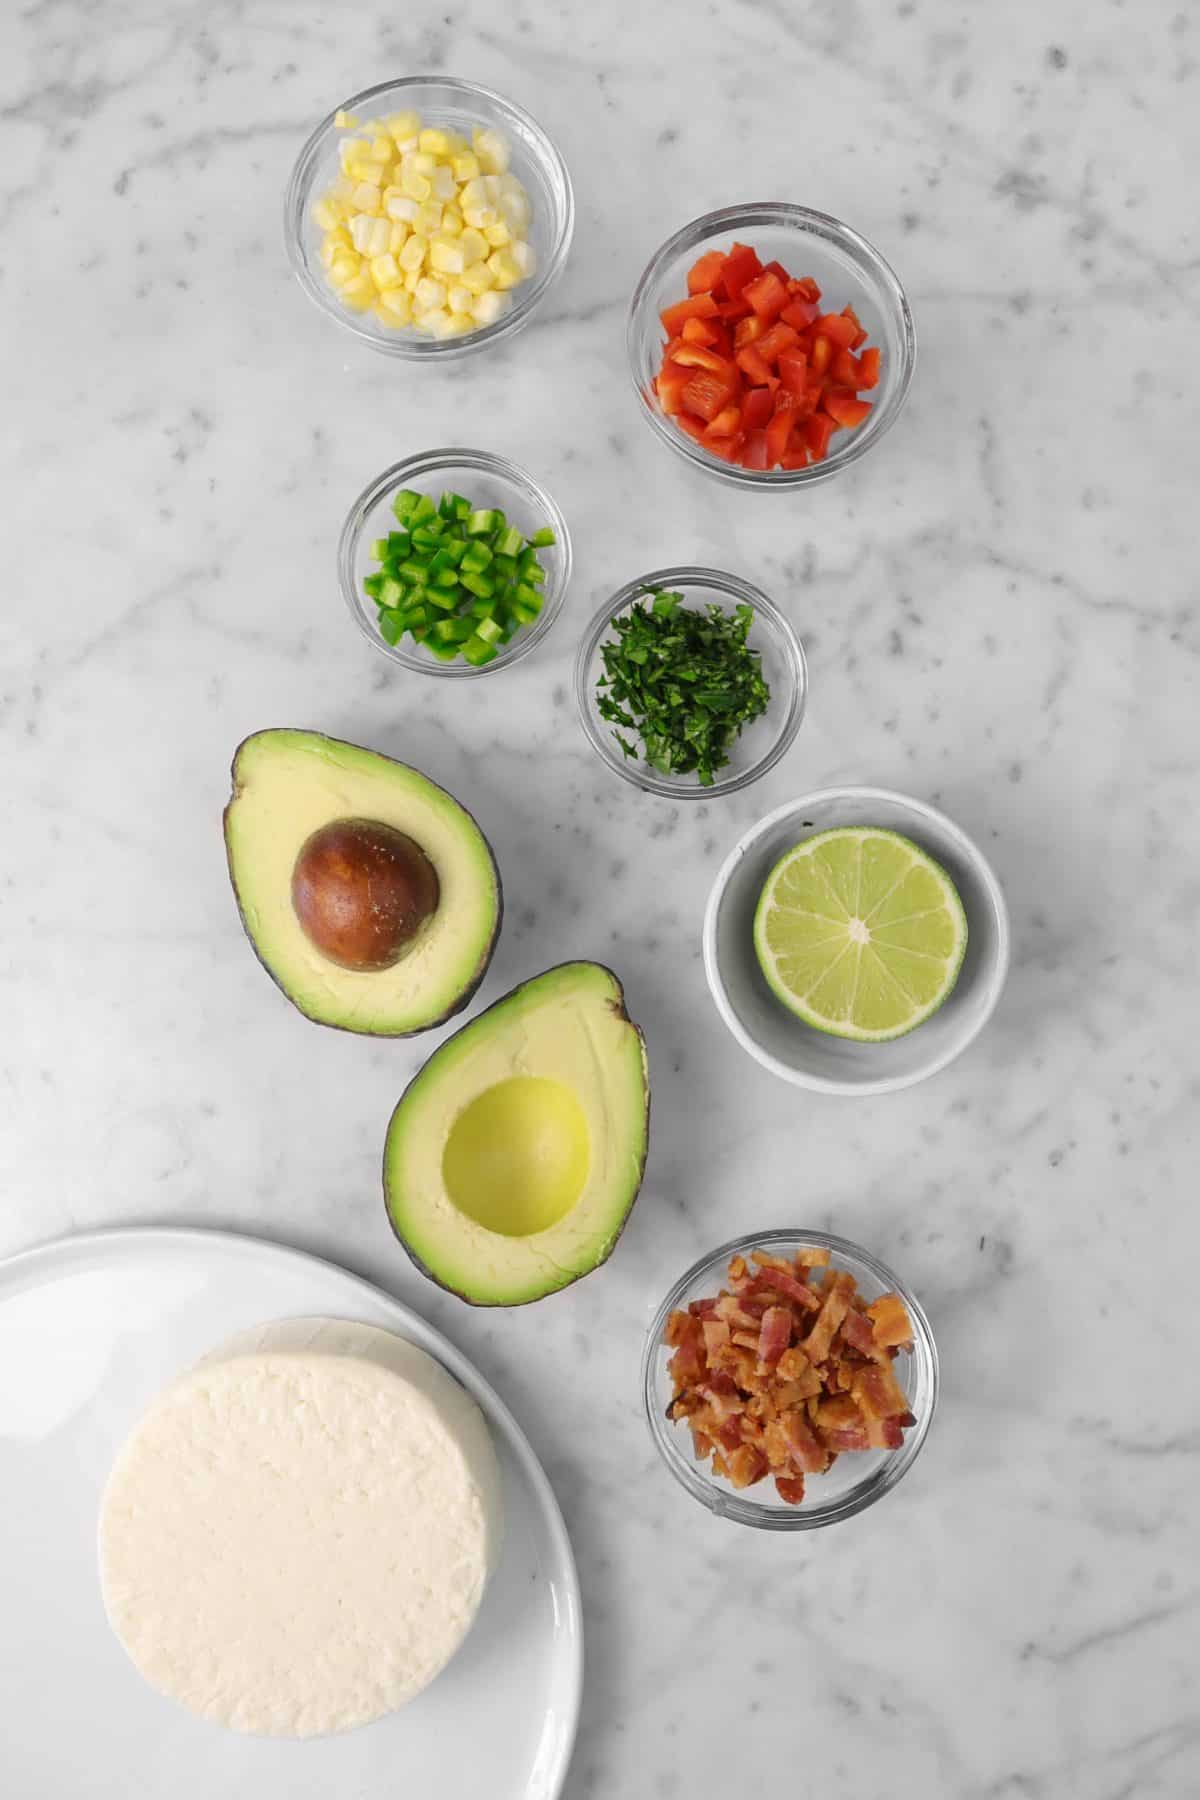 ingredients for loaded guacamole on a marble counter